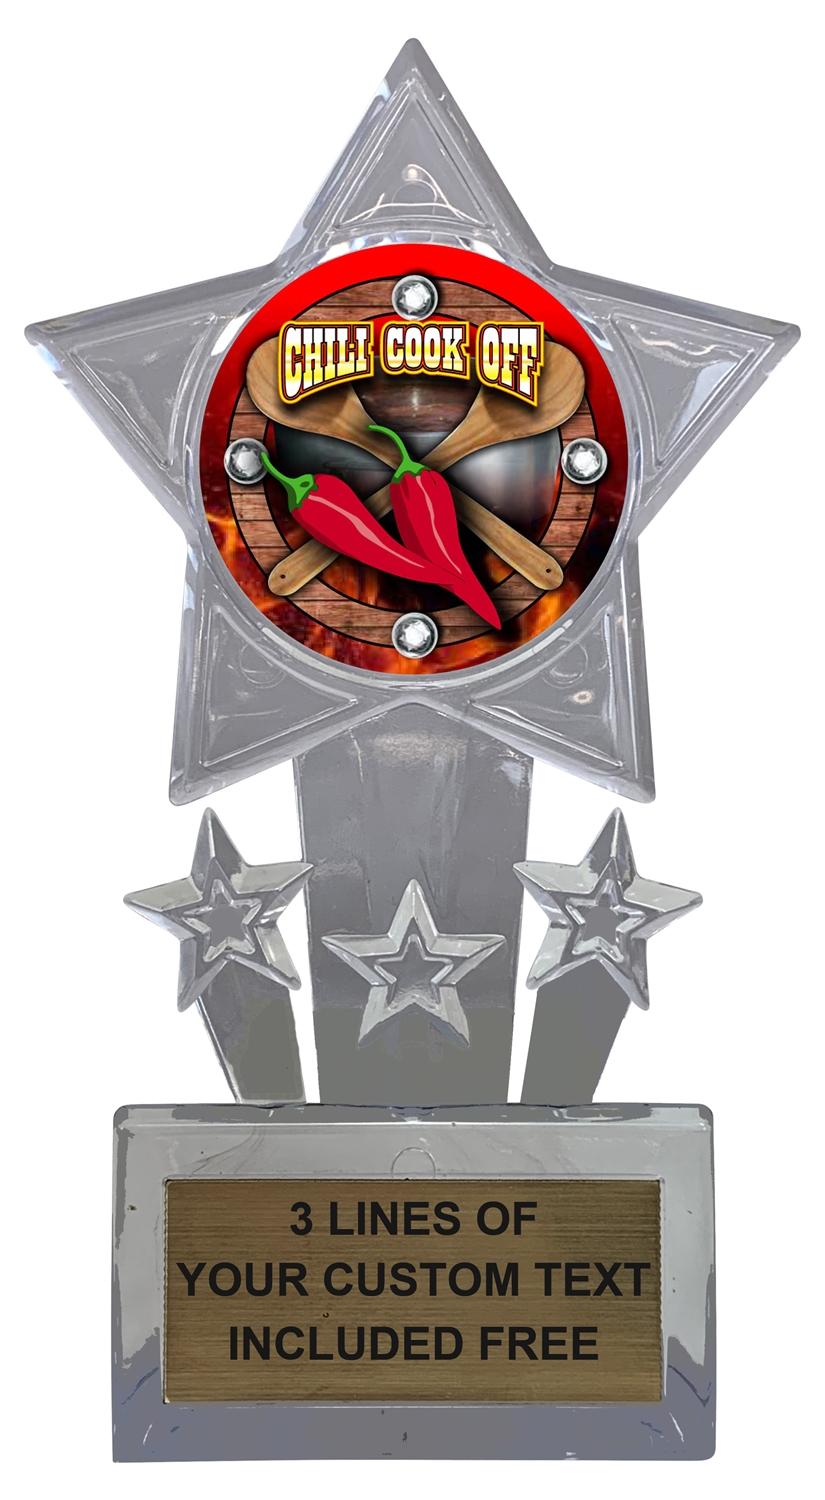 Chili Cook Off Trophy Cup